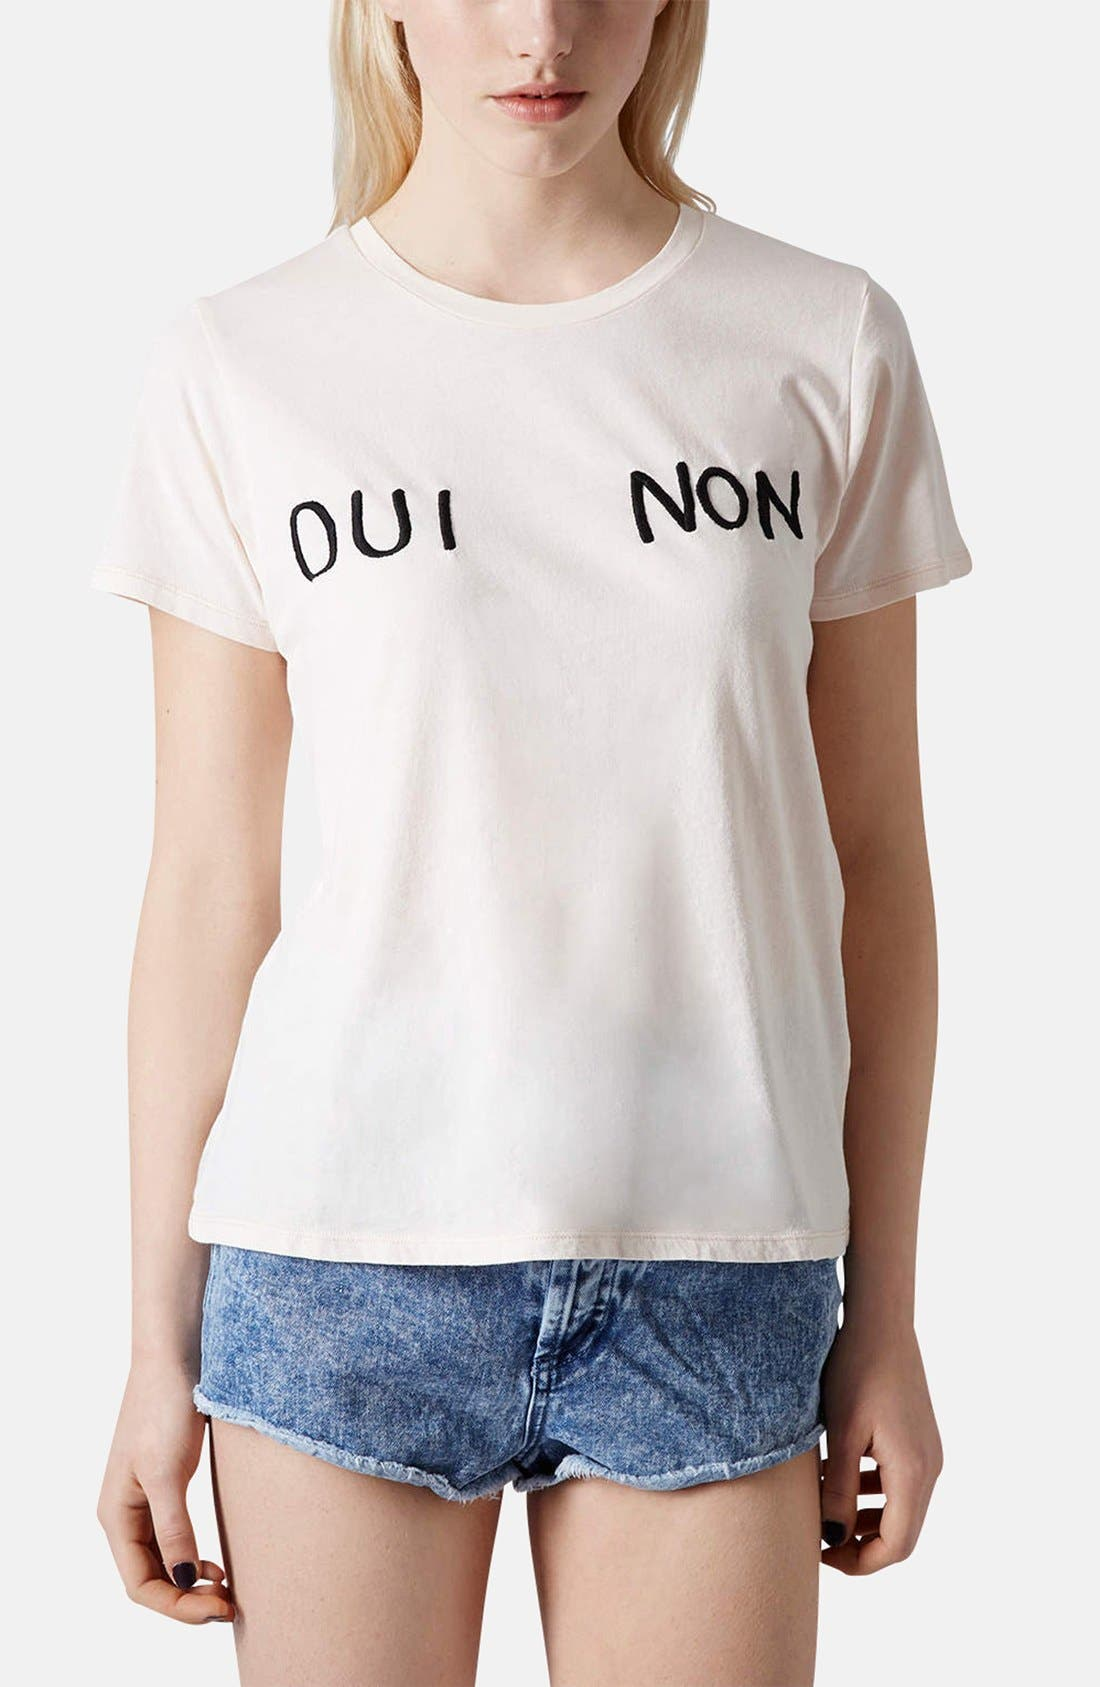 Alternate Image 1 Selected - Topshop 'Oui Non' Embroidered Cotton Tee